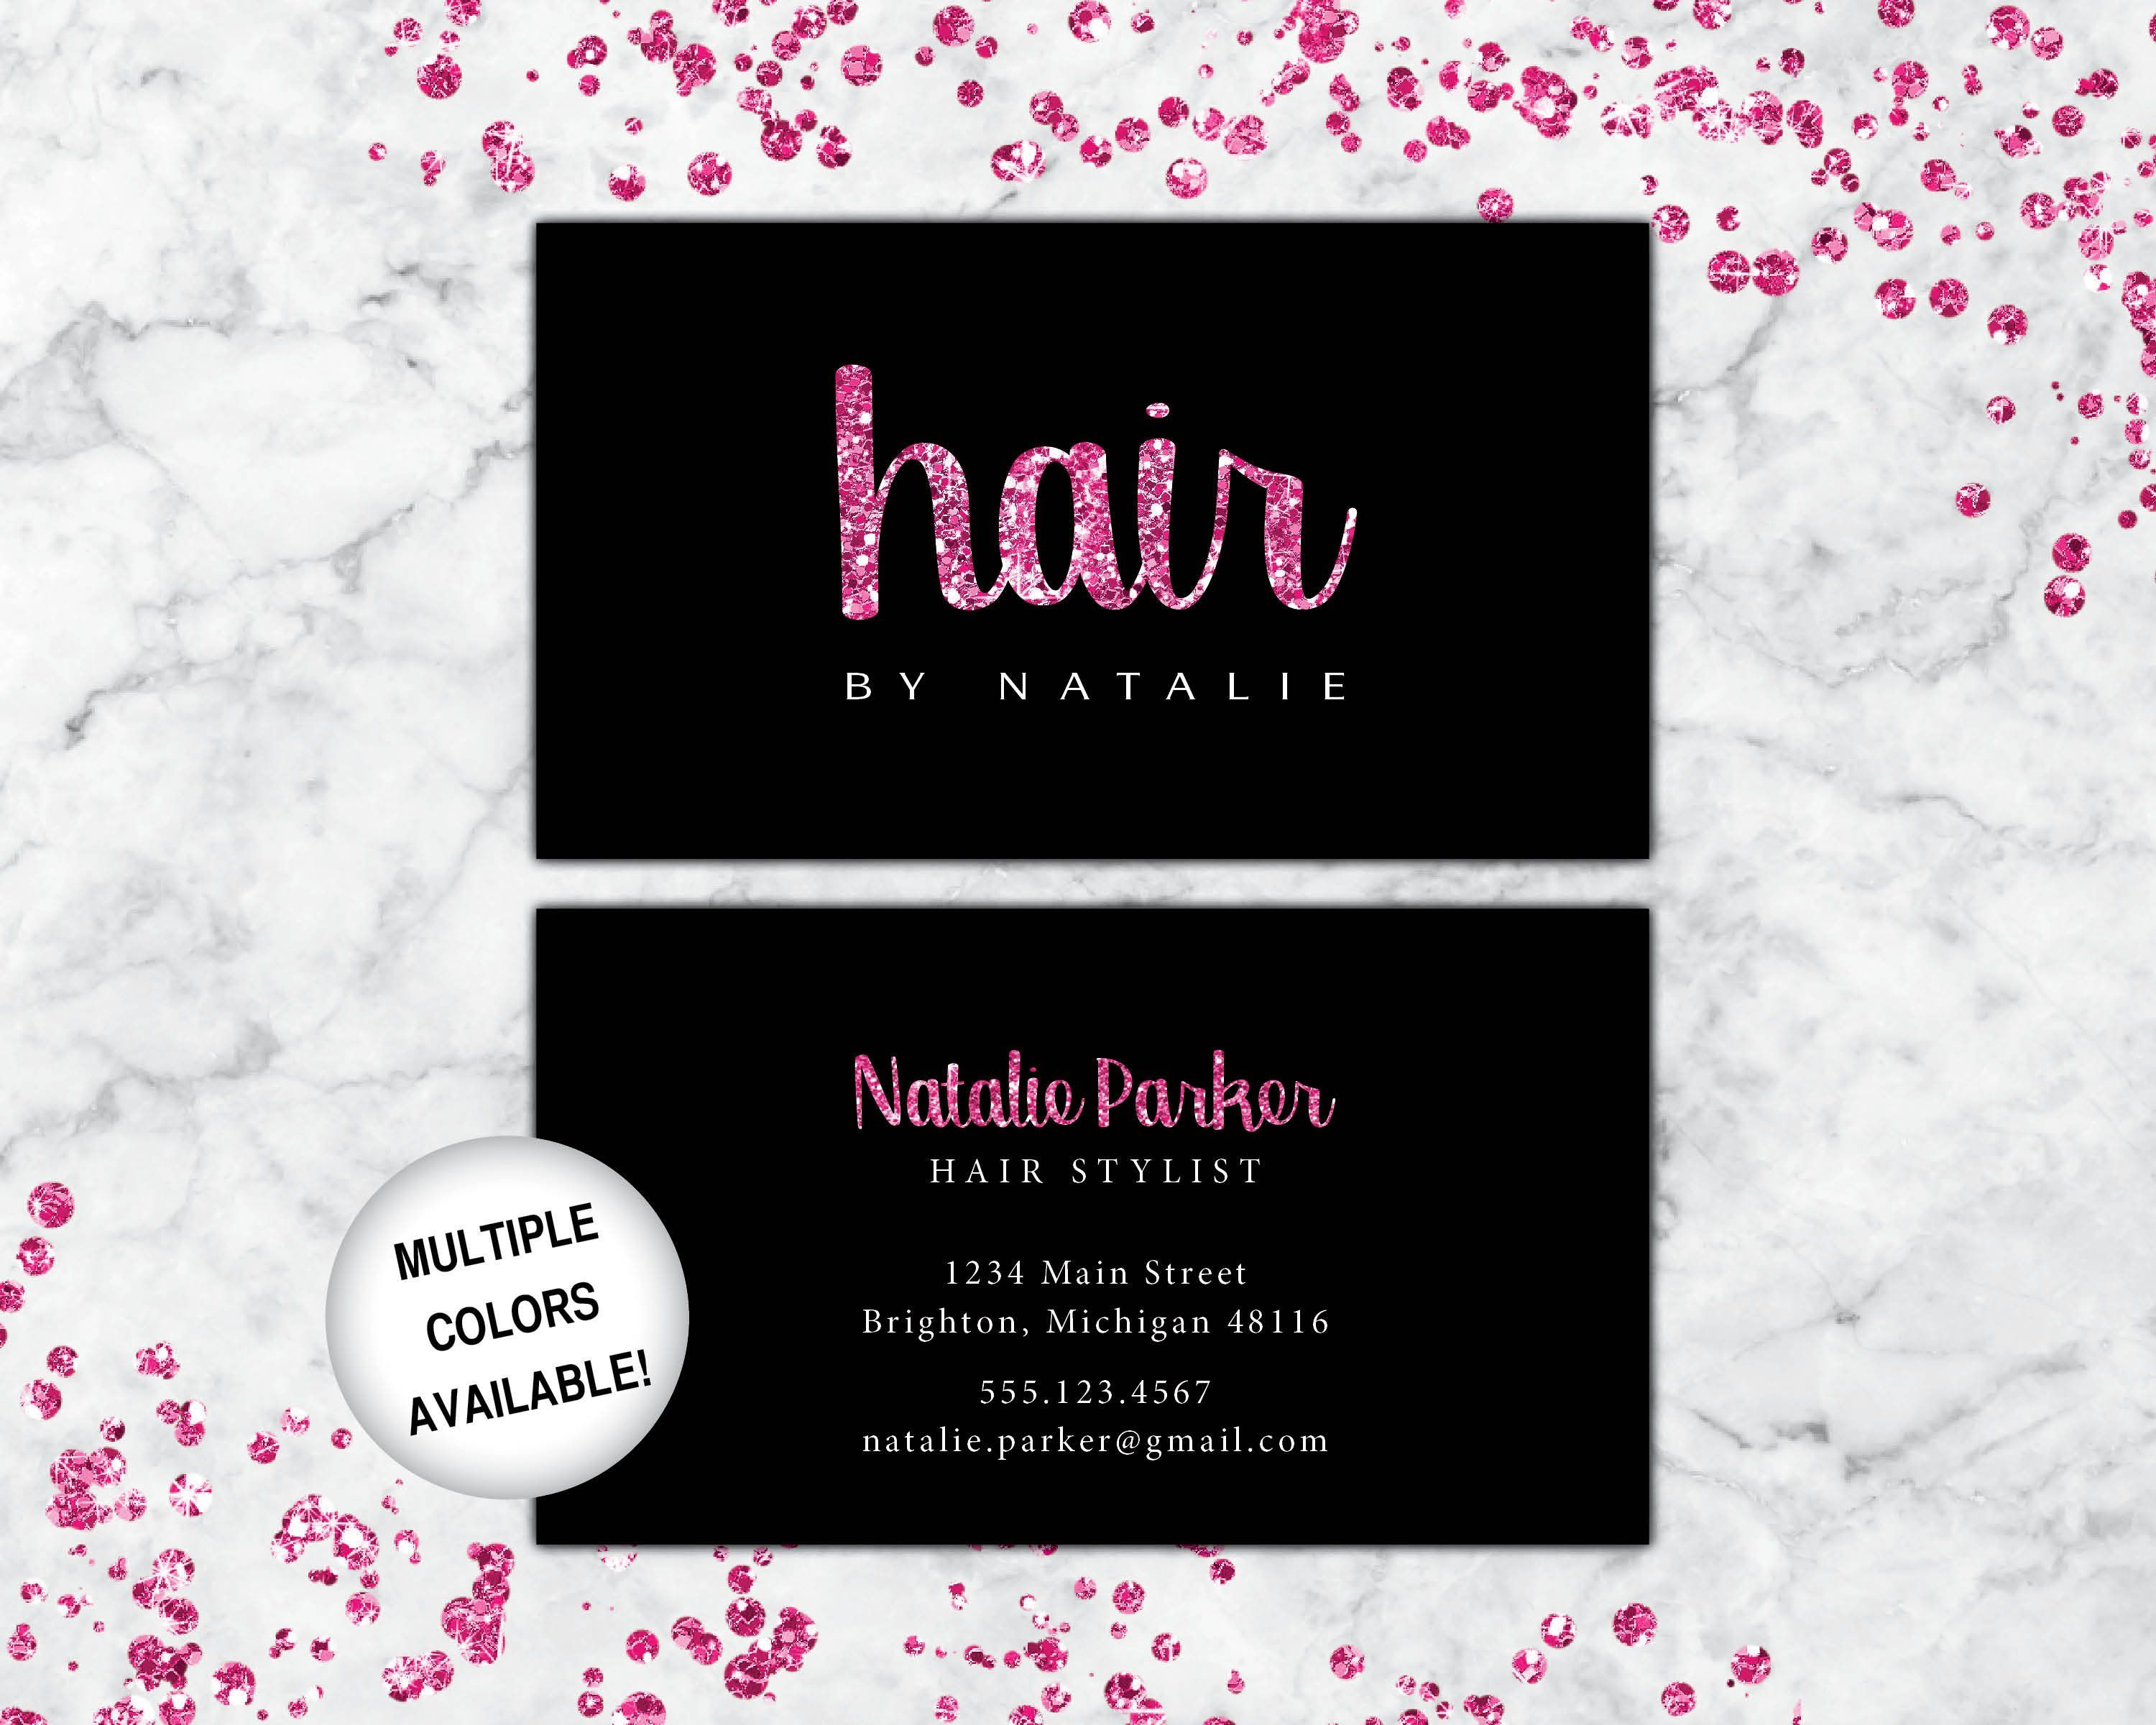 Business Cards Hairstylist Hairdresser Business Cards Pink And Black Business Cards Hairstylist Business Cards Hair Business Cards Beauty Business Cards